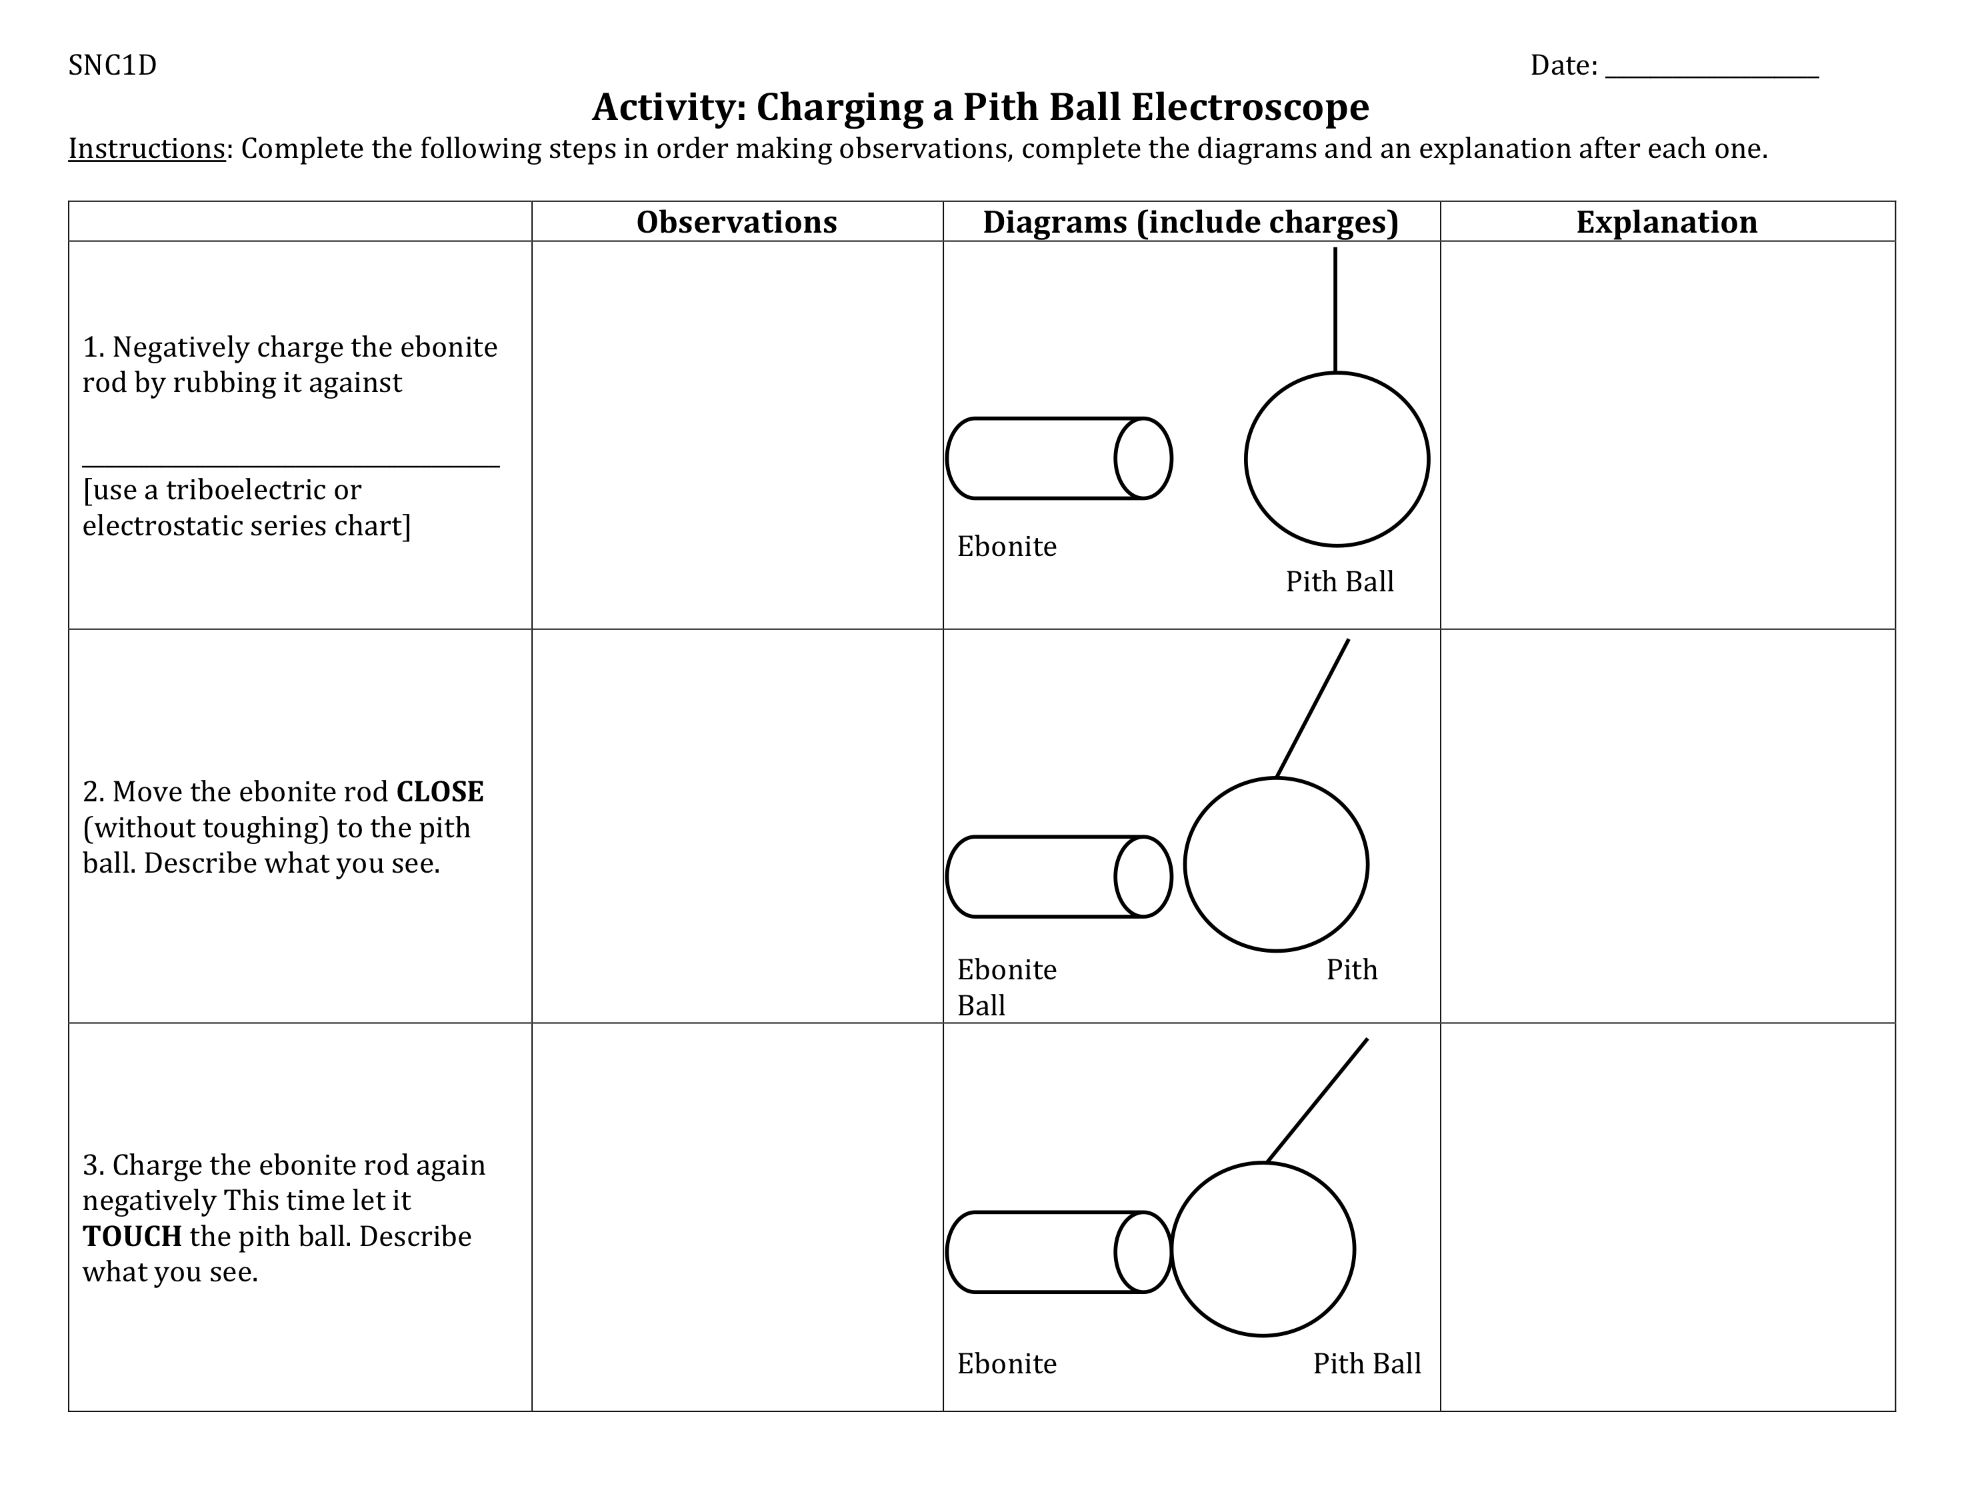 Charging A Pith Ball Electroscope Activity Thursday February 21 2019 Activities Ball Observation